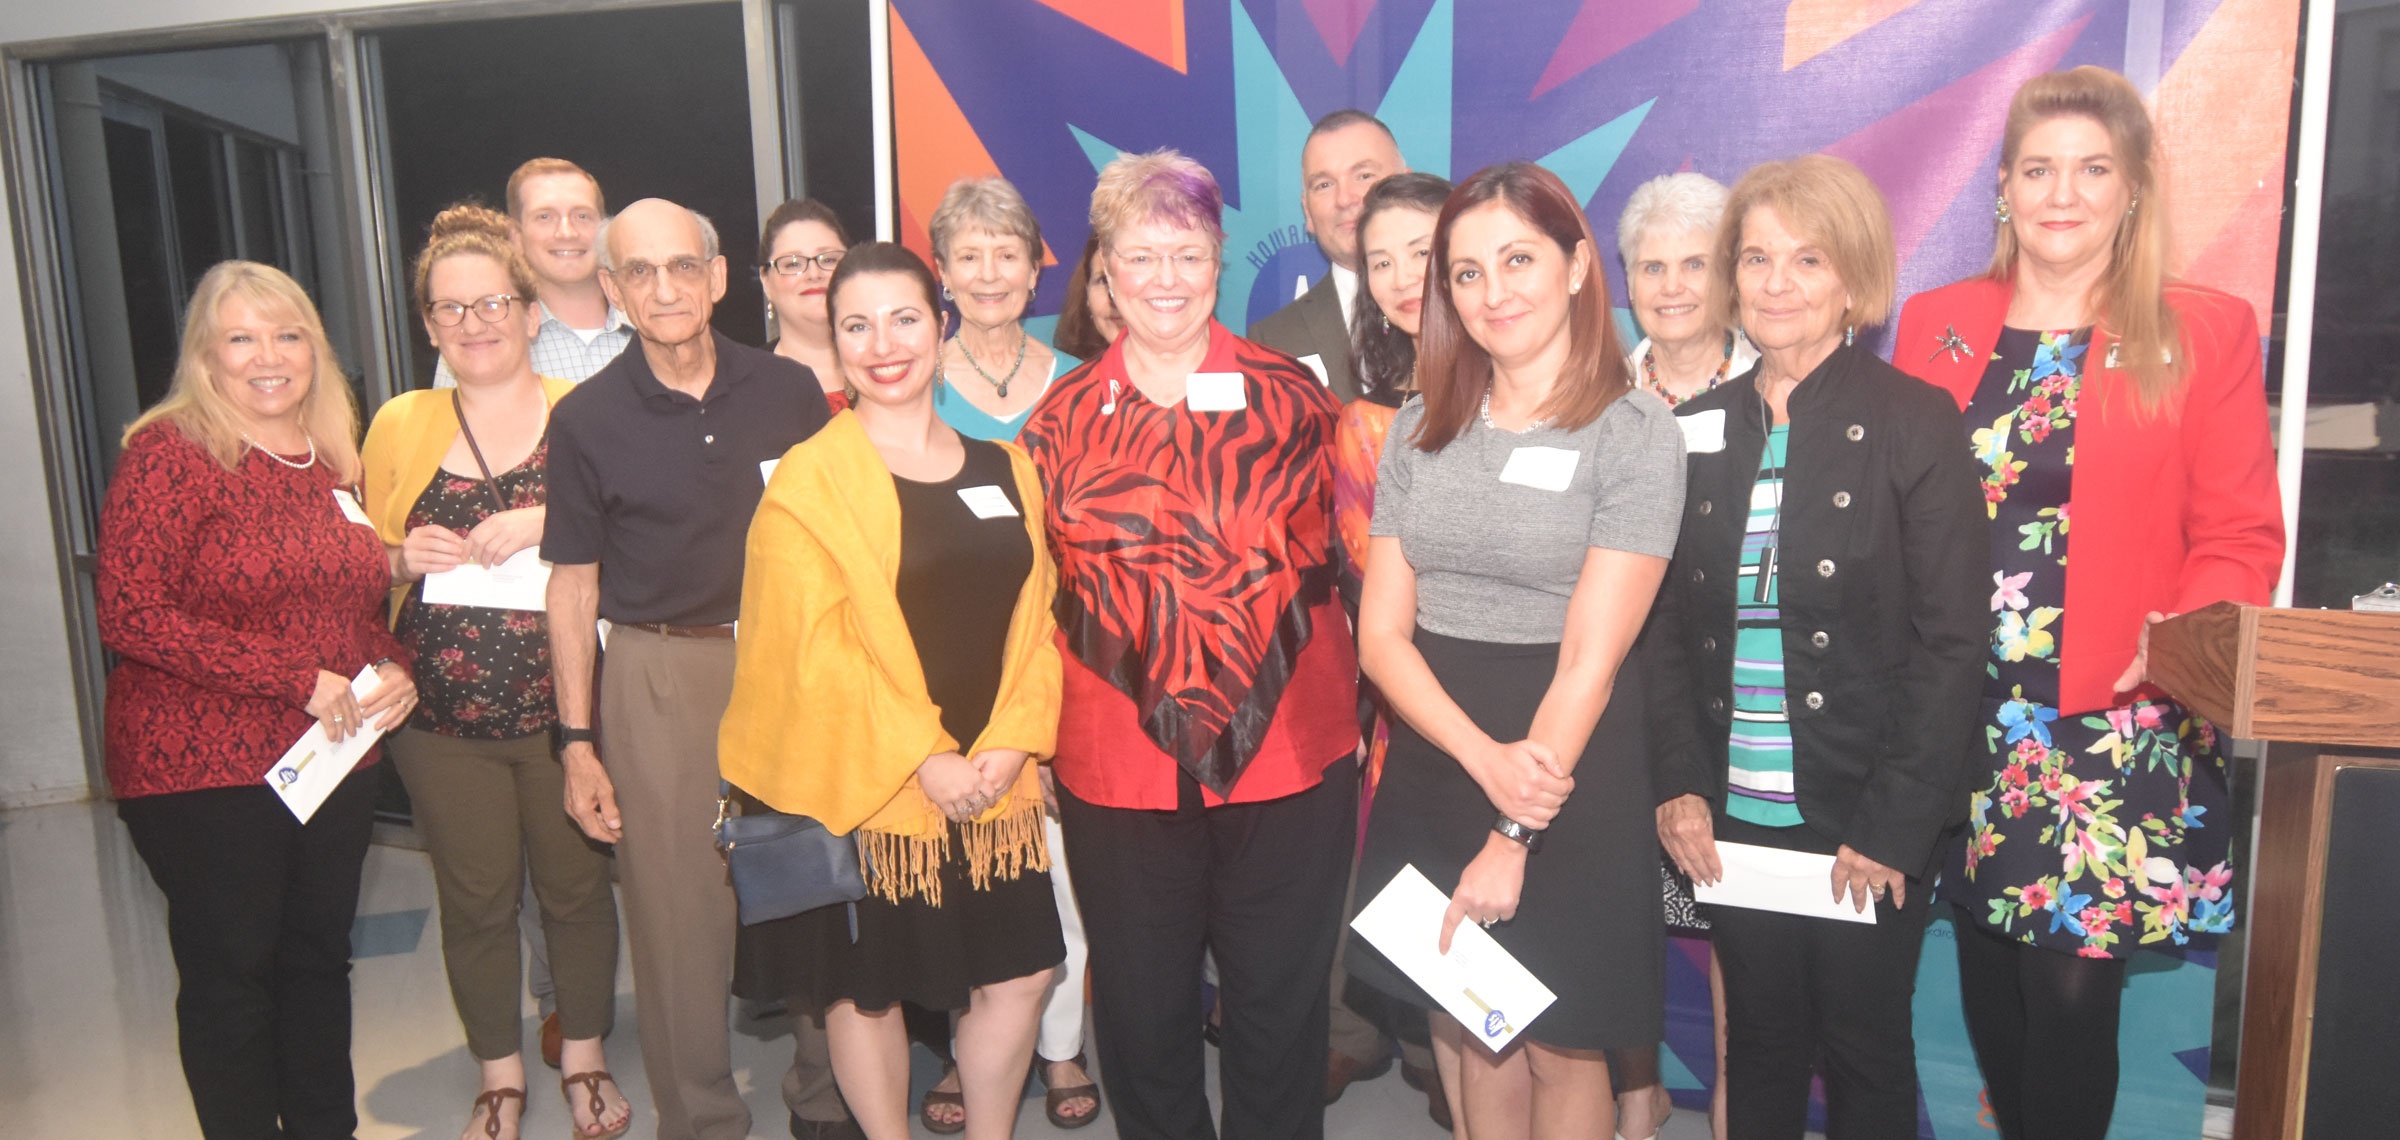 Maryland State Arts Council Executive Director Ken Skrzesz, HCAC Board President Julie Hughes Jenkins, and HCAC Executive Director Coleen West with FY19 Community Arts Development grantees. (HCAC photo)